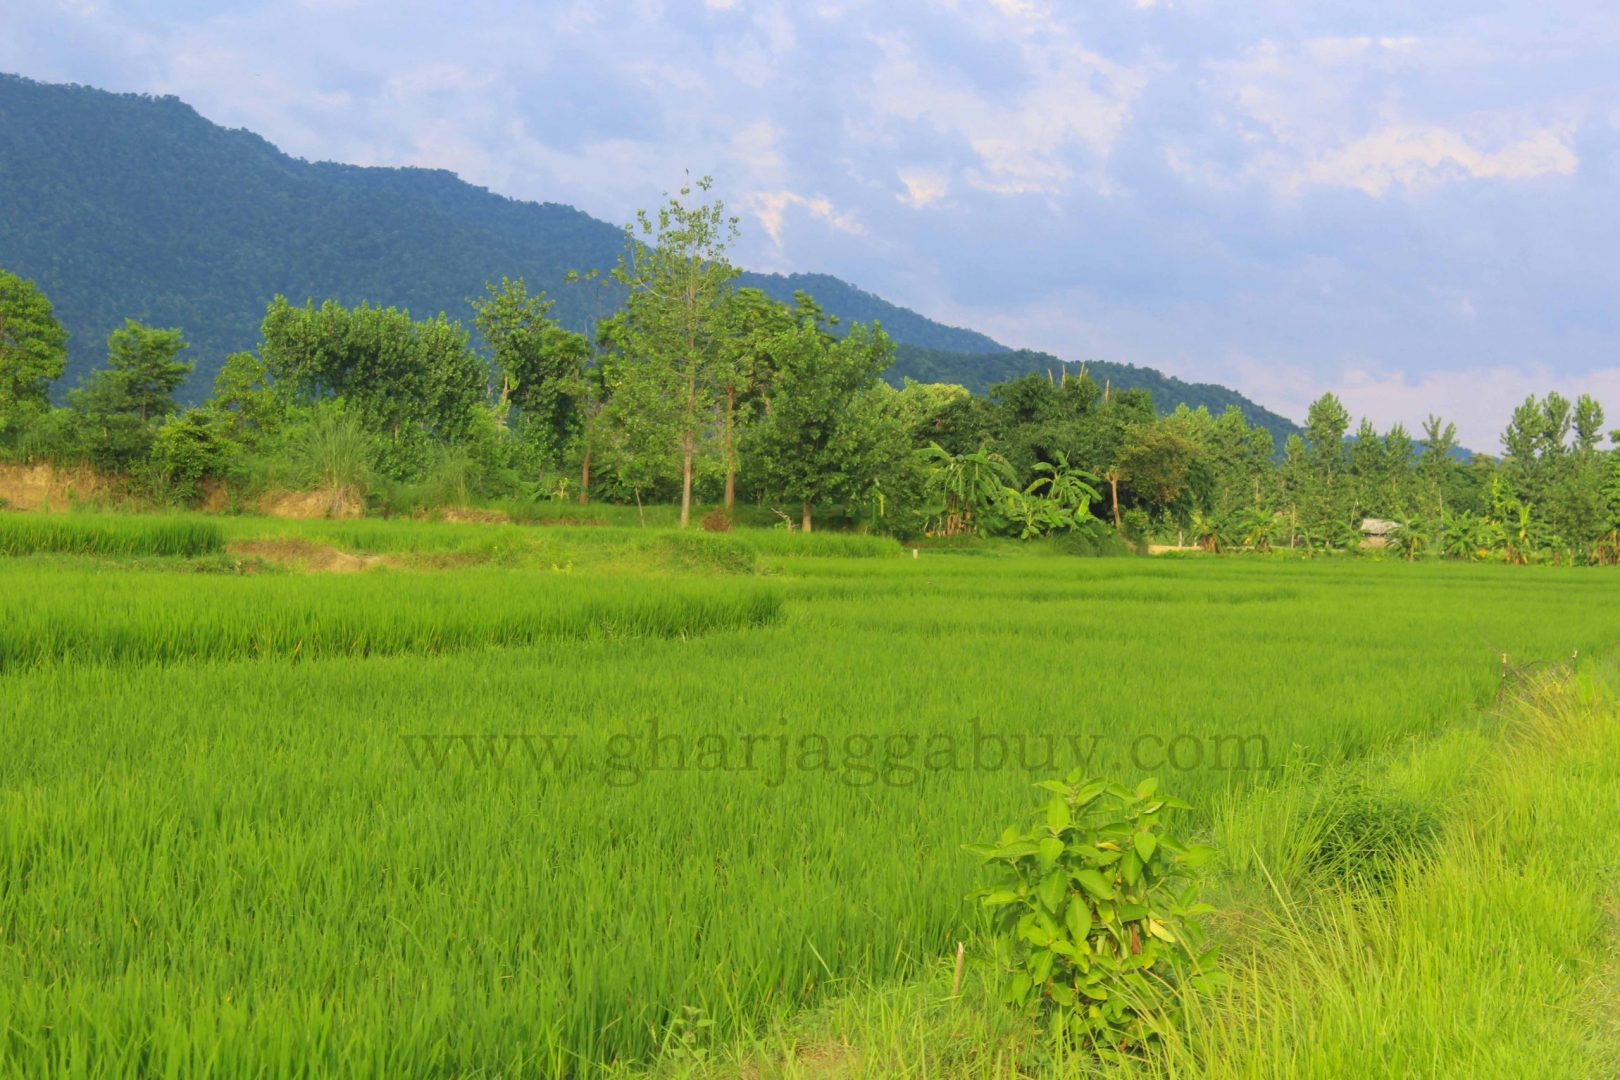 10 Kattha land for sale near Bardaghat, Nawalparasi, Nepal